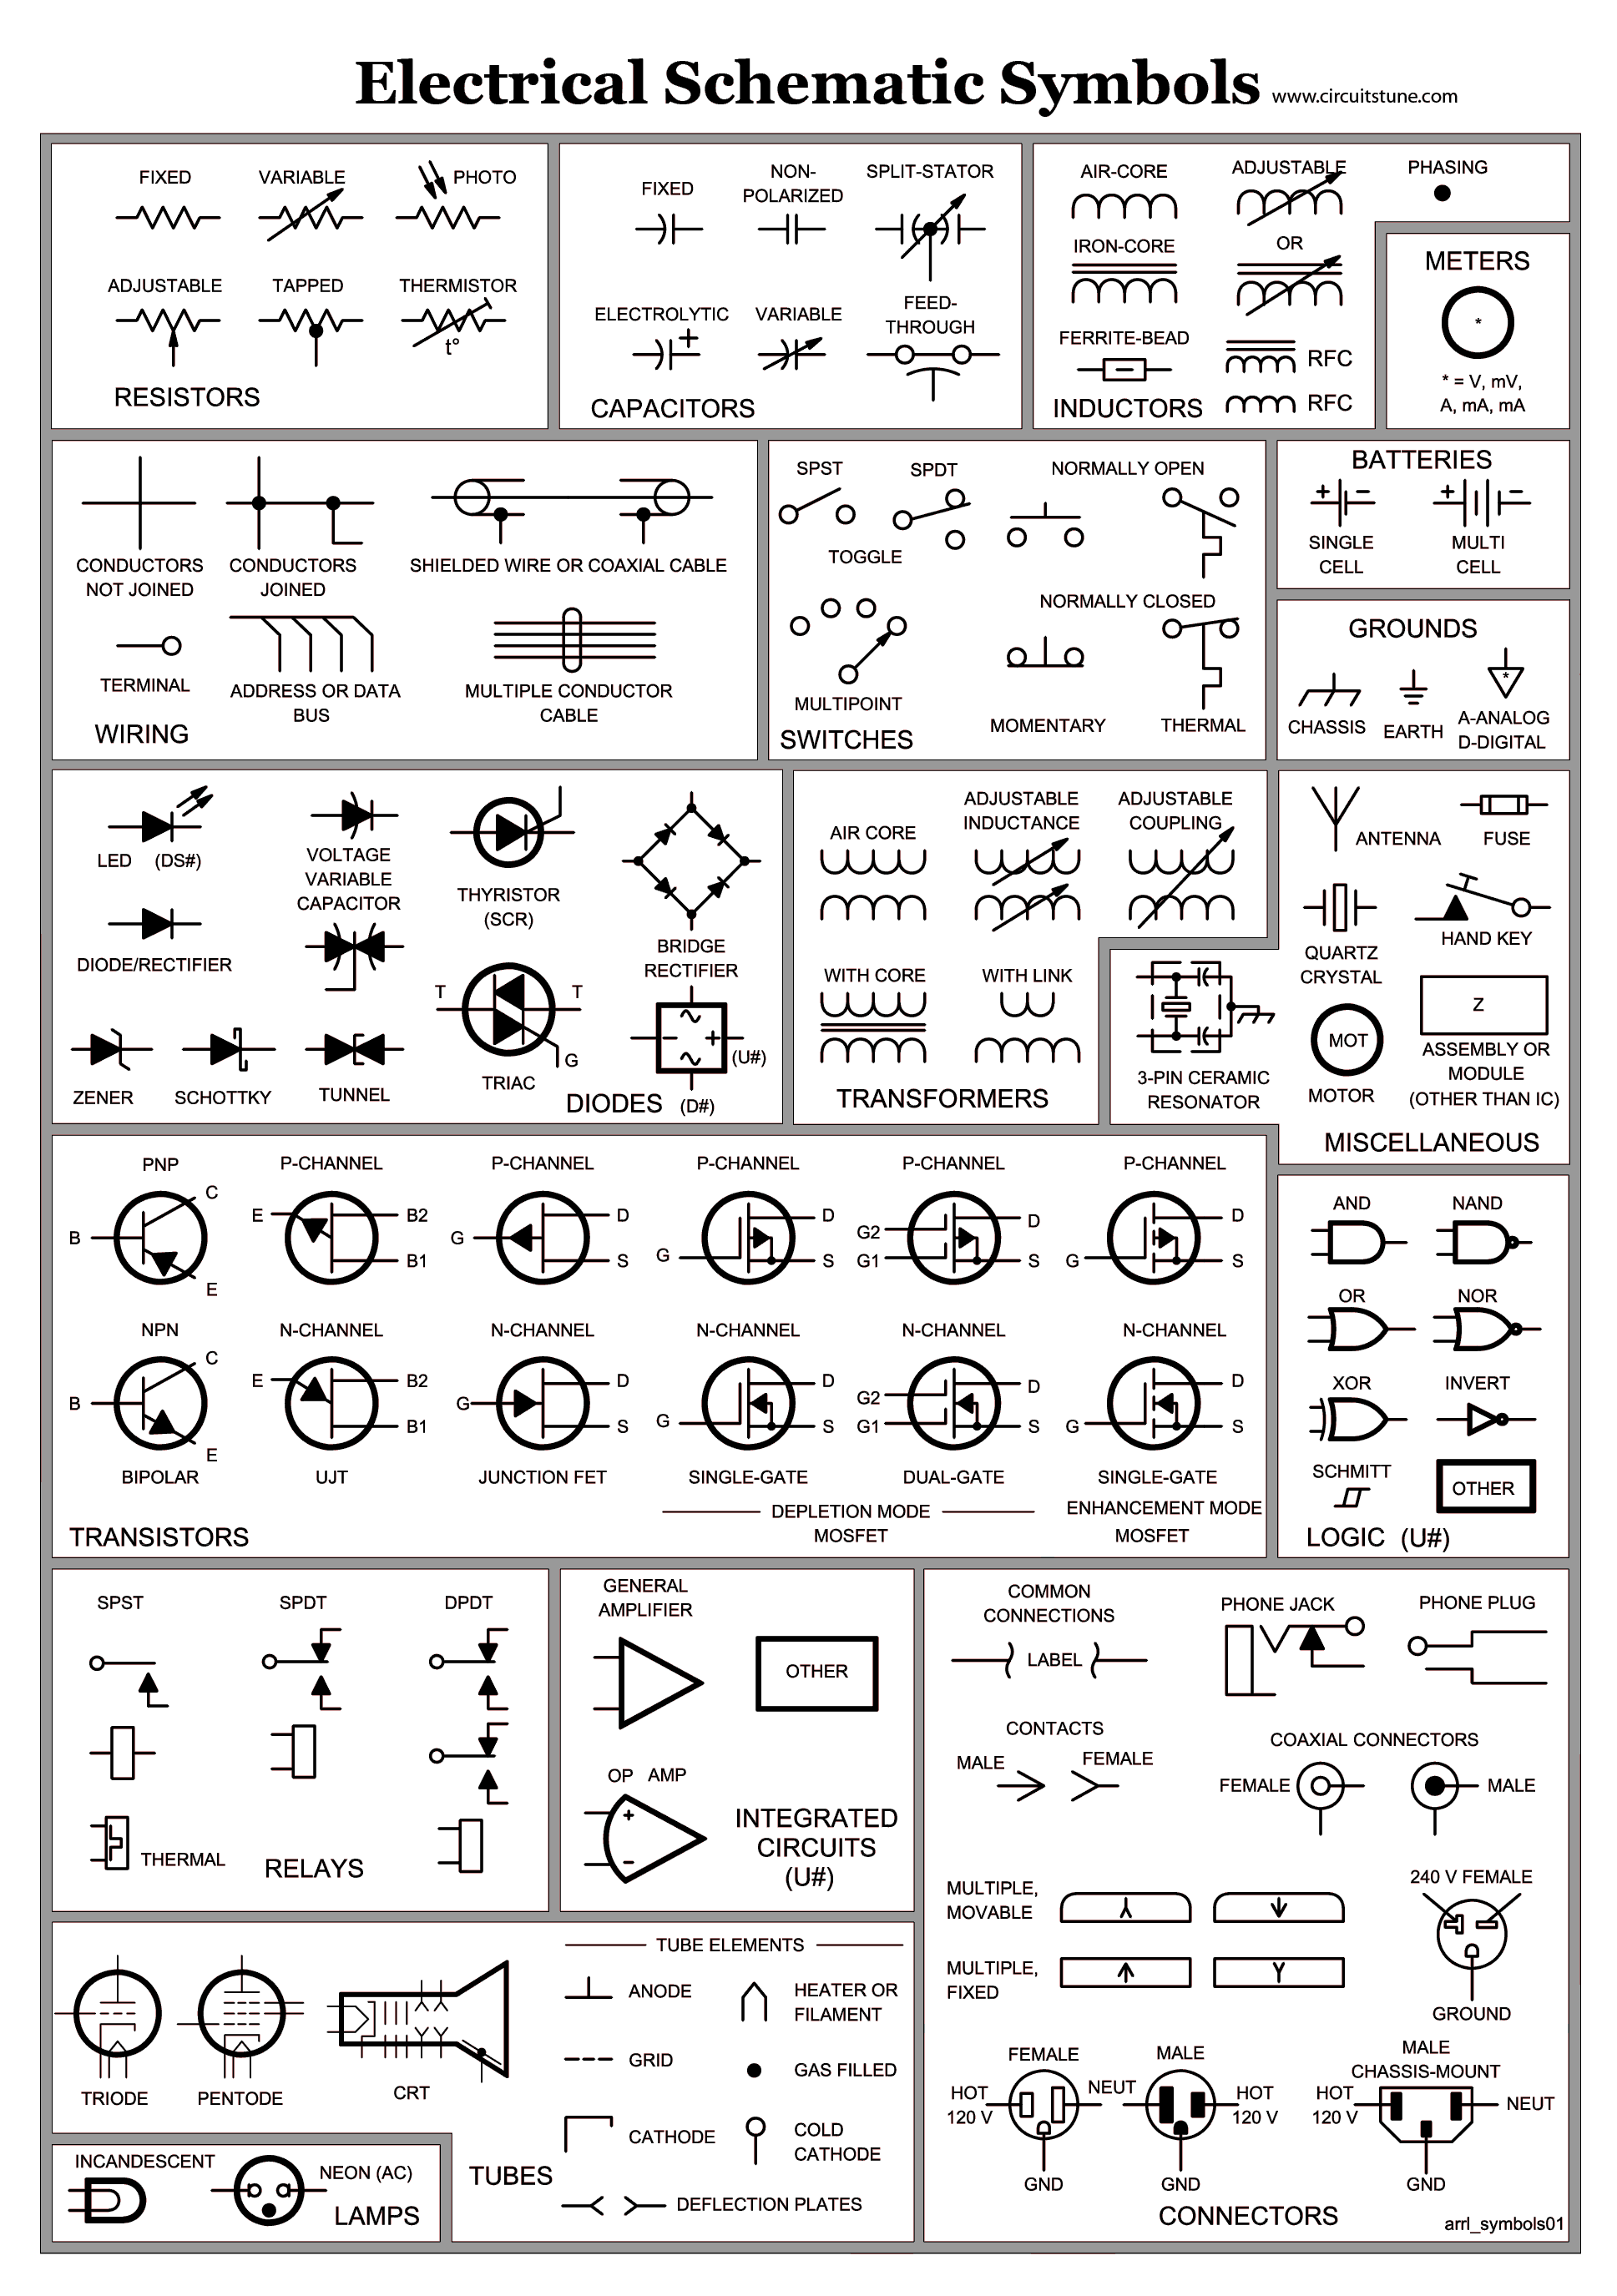 circuit schematic symbols bmet wiki fandom powered by wikia rh bmet wikia com Electrical Symbols Clip Art australian electrical wiring diagram symbols